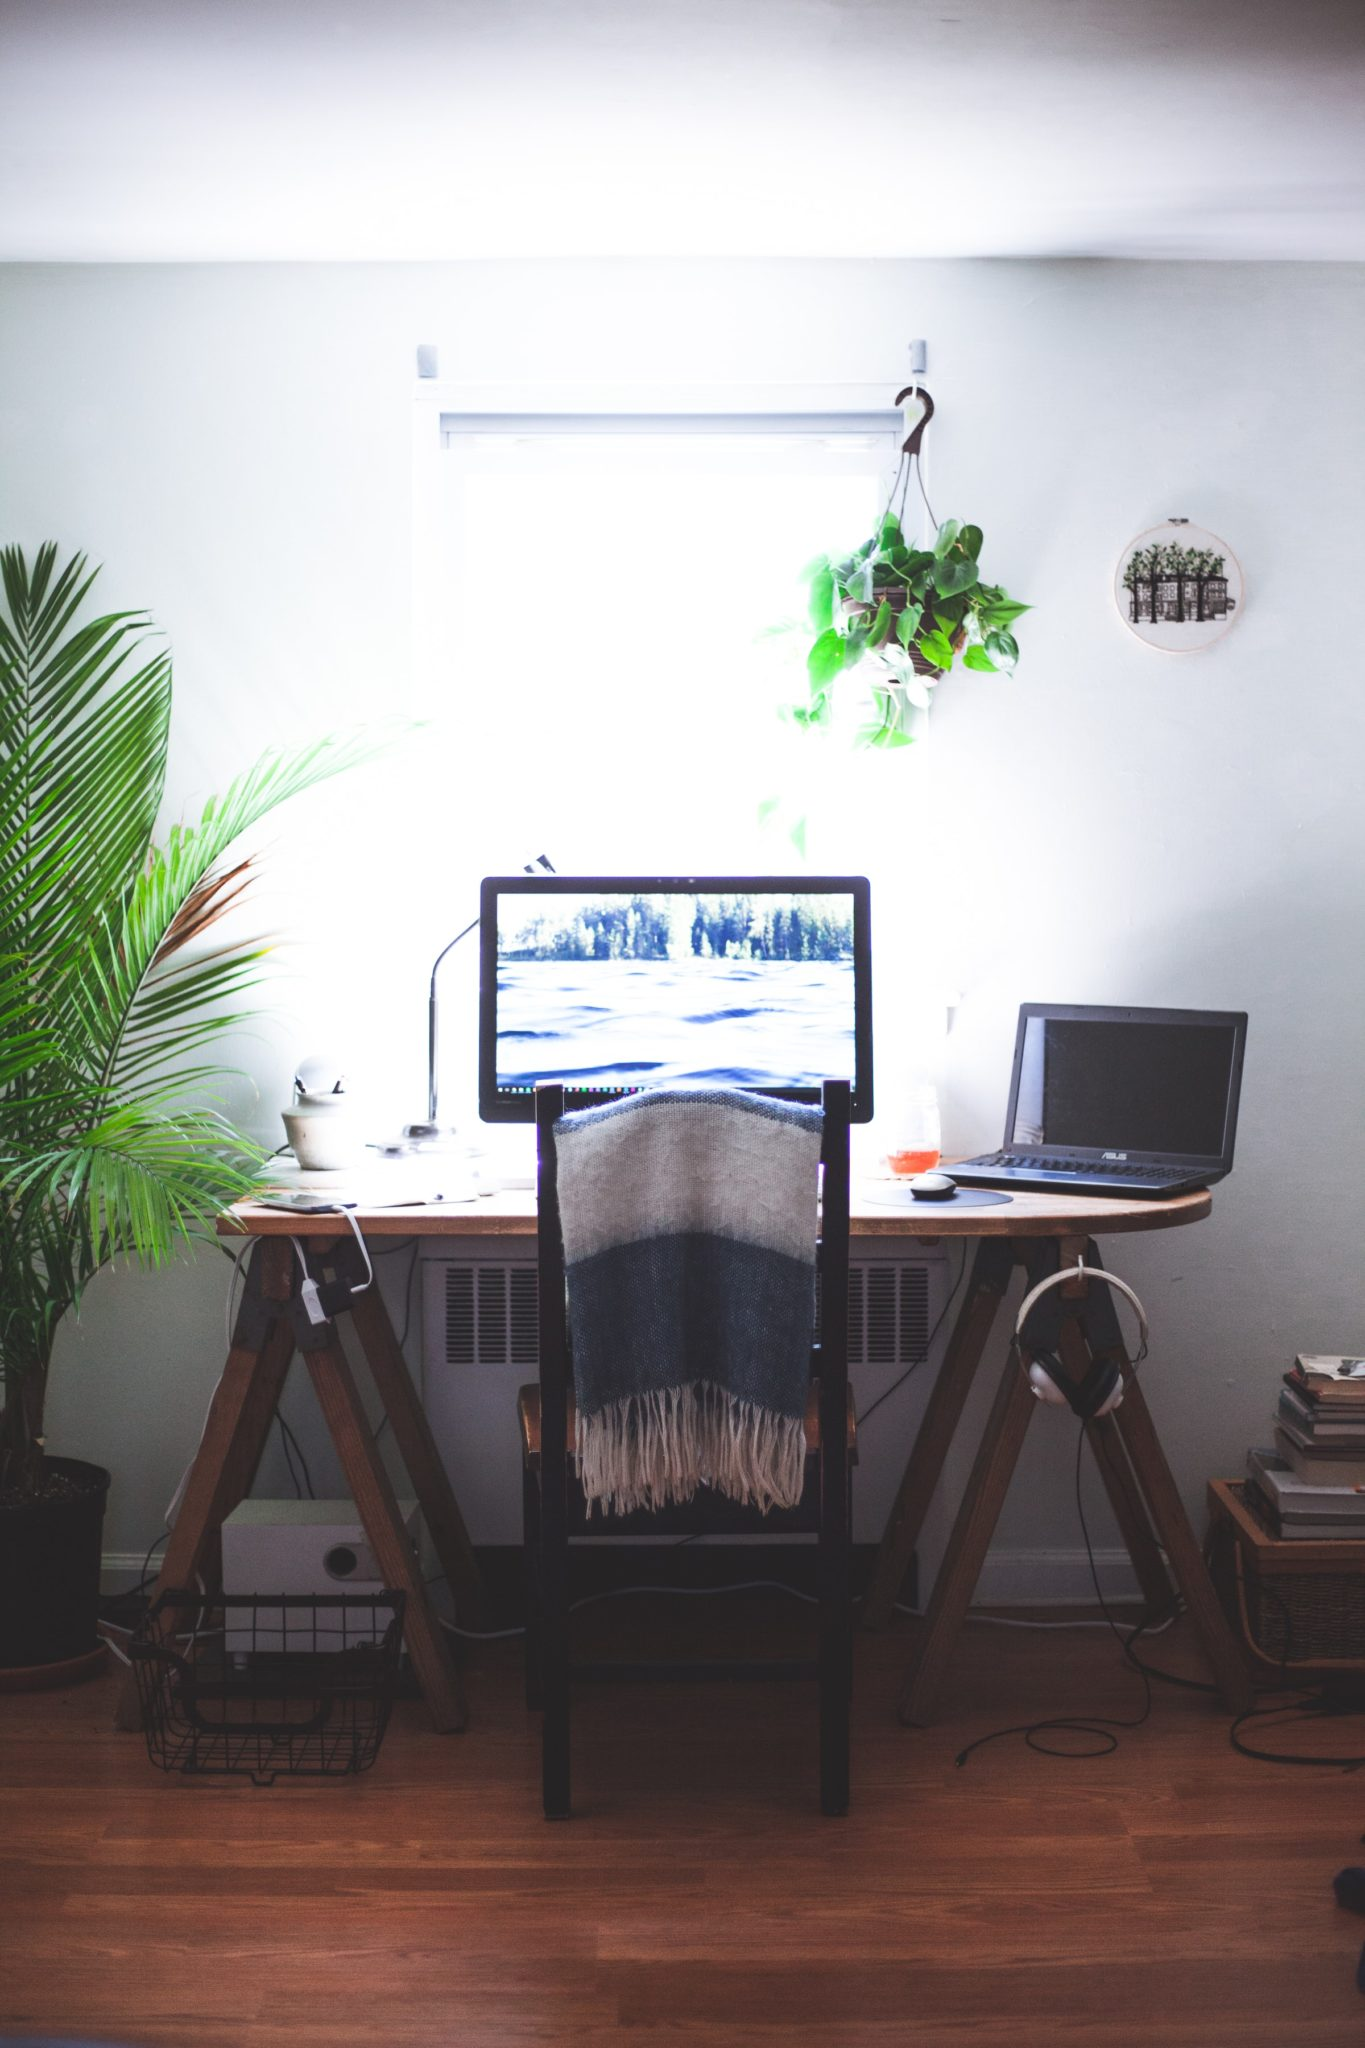 home office workspace with laptop and desk